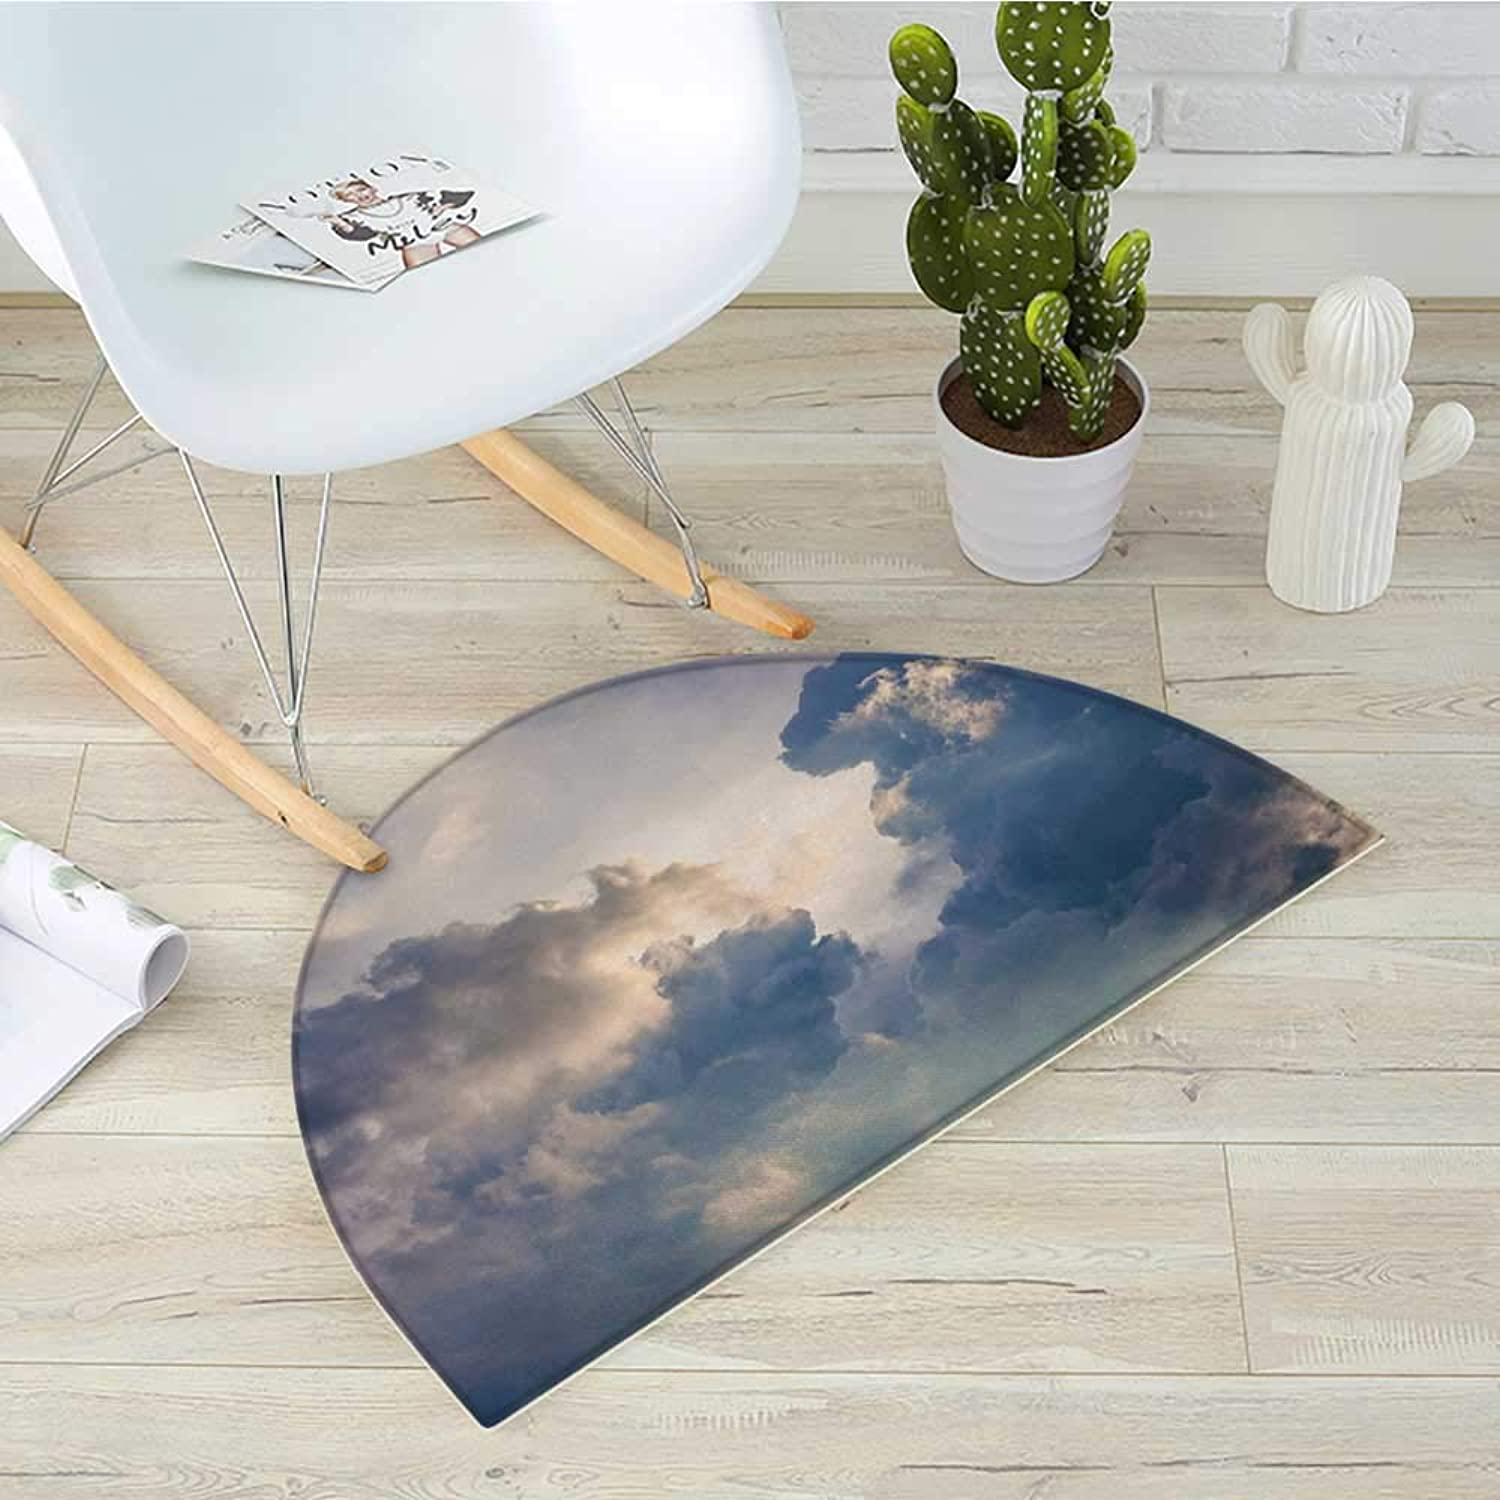 Clouds Semicircle Doormat Majestic Rain Storm Clouds Over The Sky High Above The Ground Environment Scenery Halfmoon doormats H 39.3  xD 59  bluee White